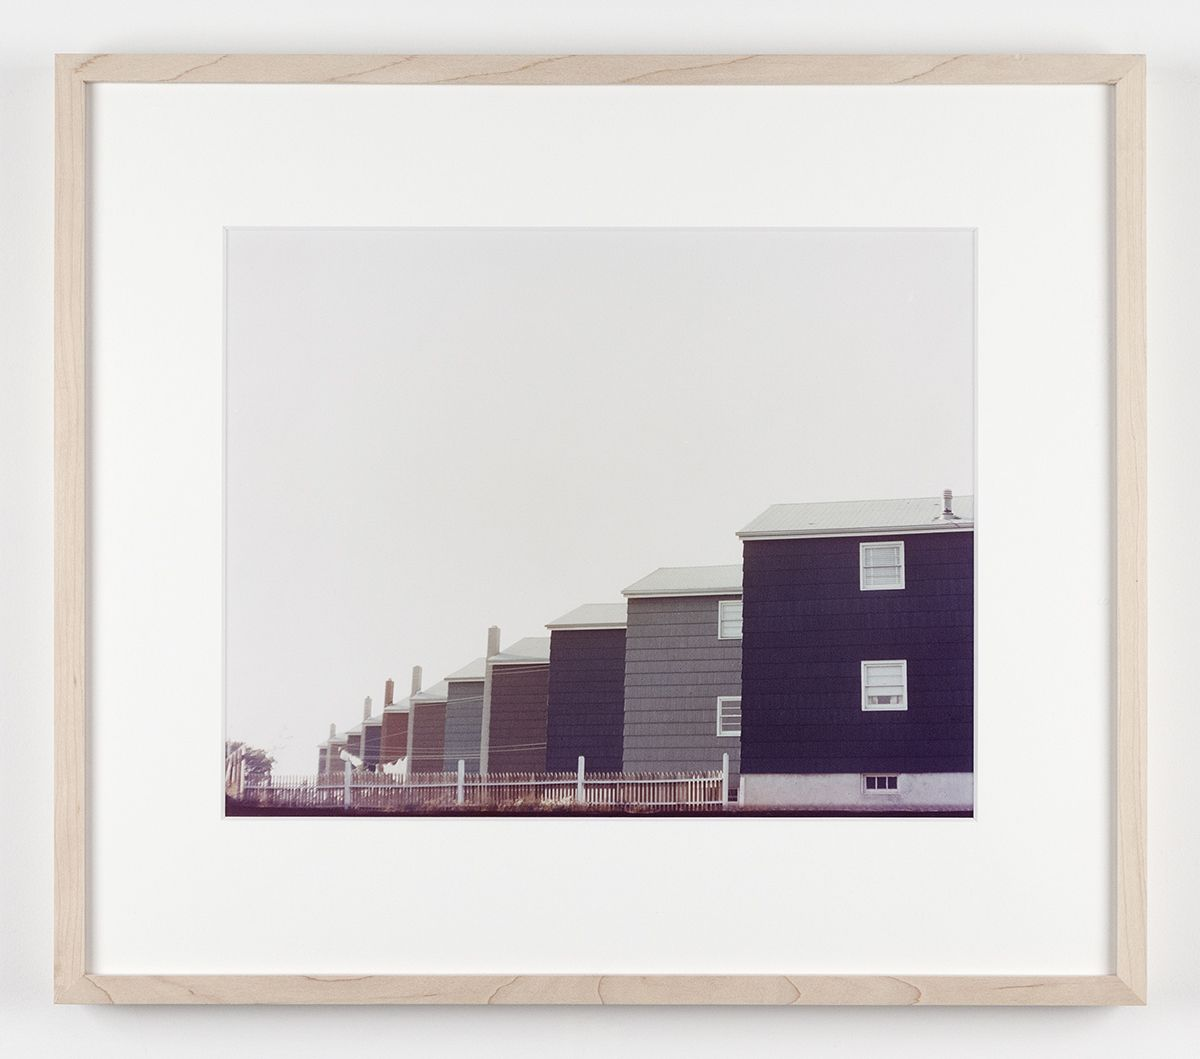 Dan Graham Row of Tract Houses, Bayonne, New Jersey, 1966 C-print Framed: 17 1/8 x 19 3/4 inches (43.5 x 50.2 cm)